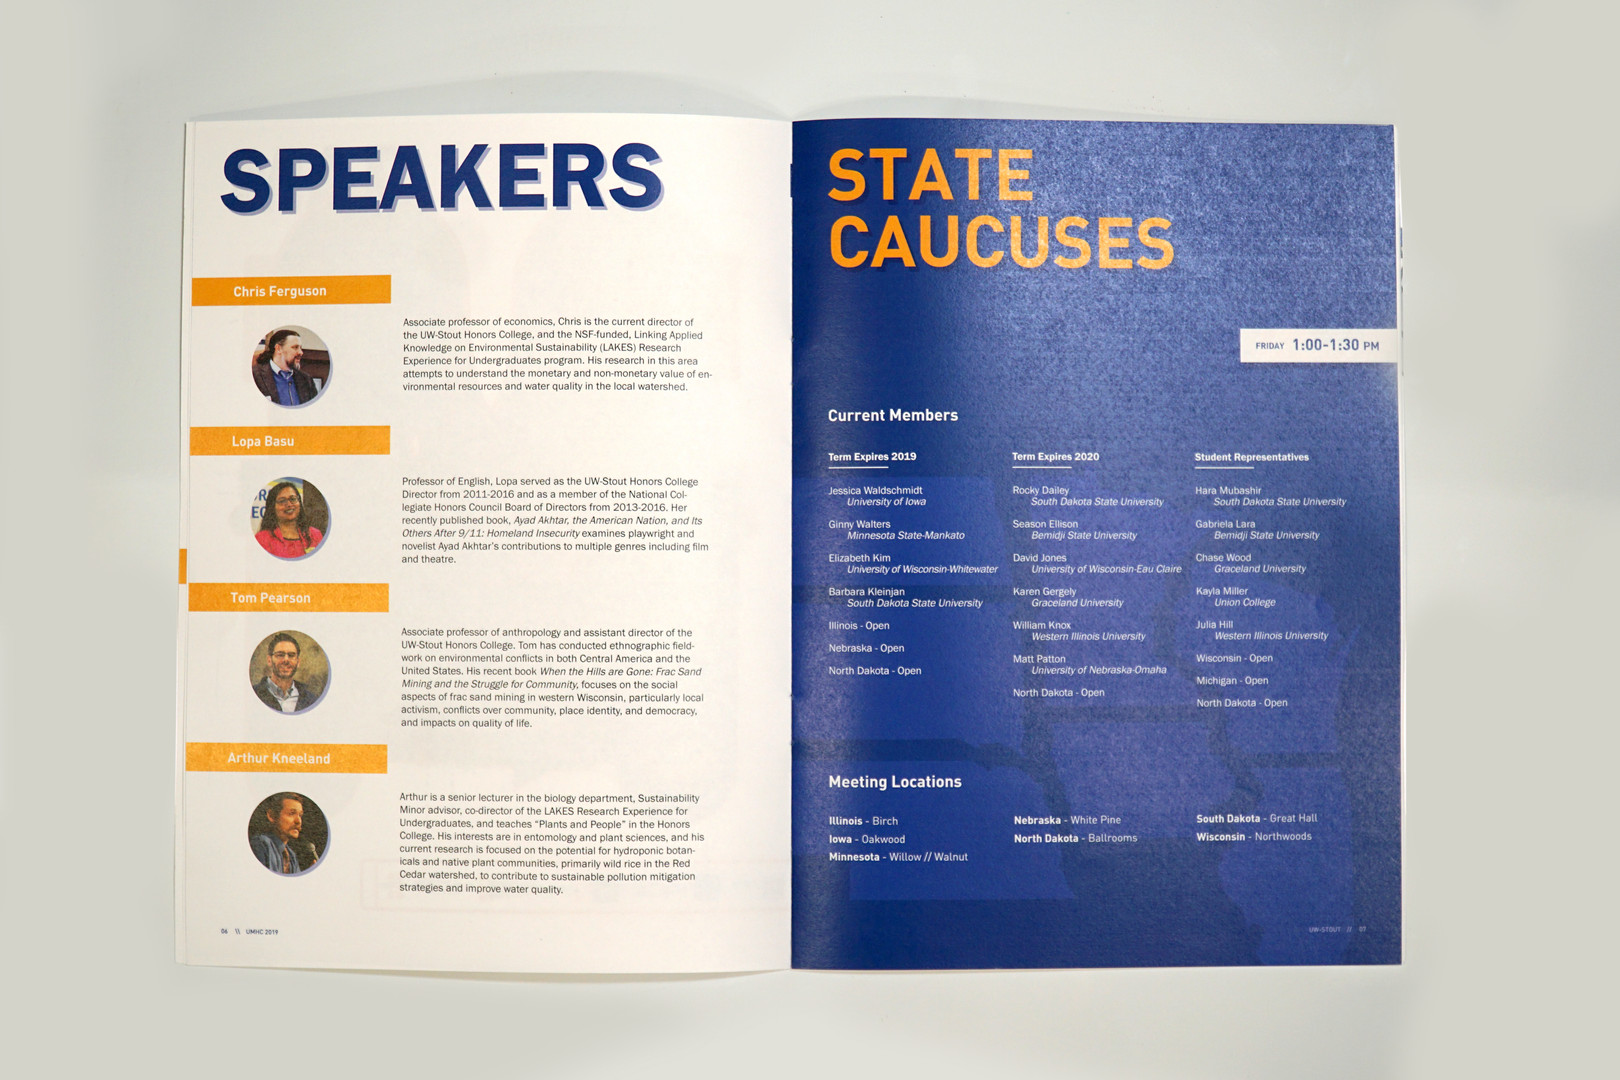 Speakers + State Caucuses